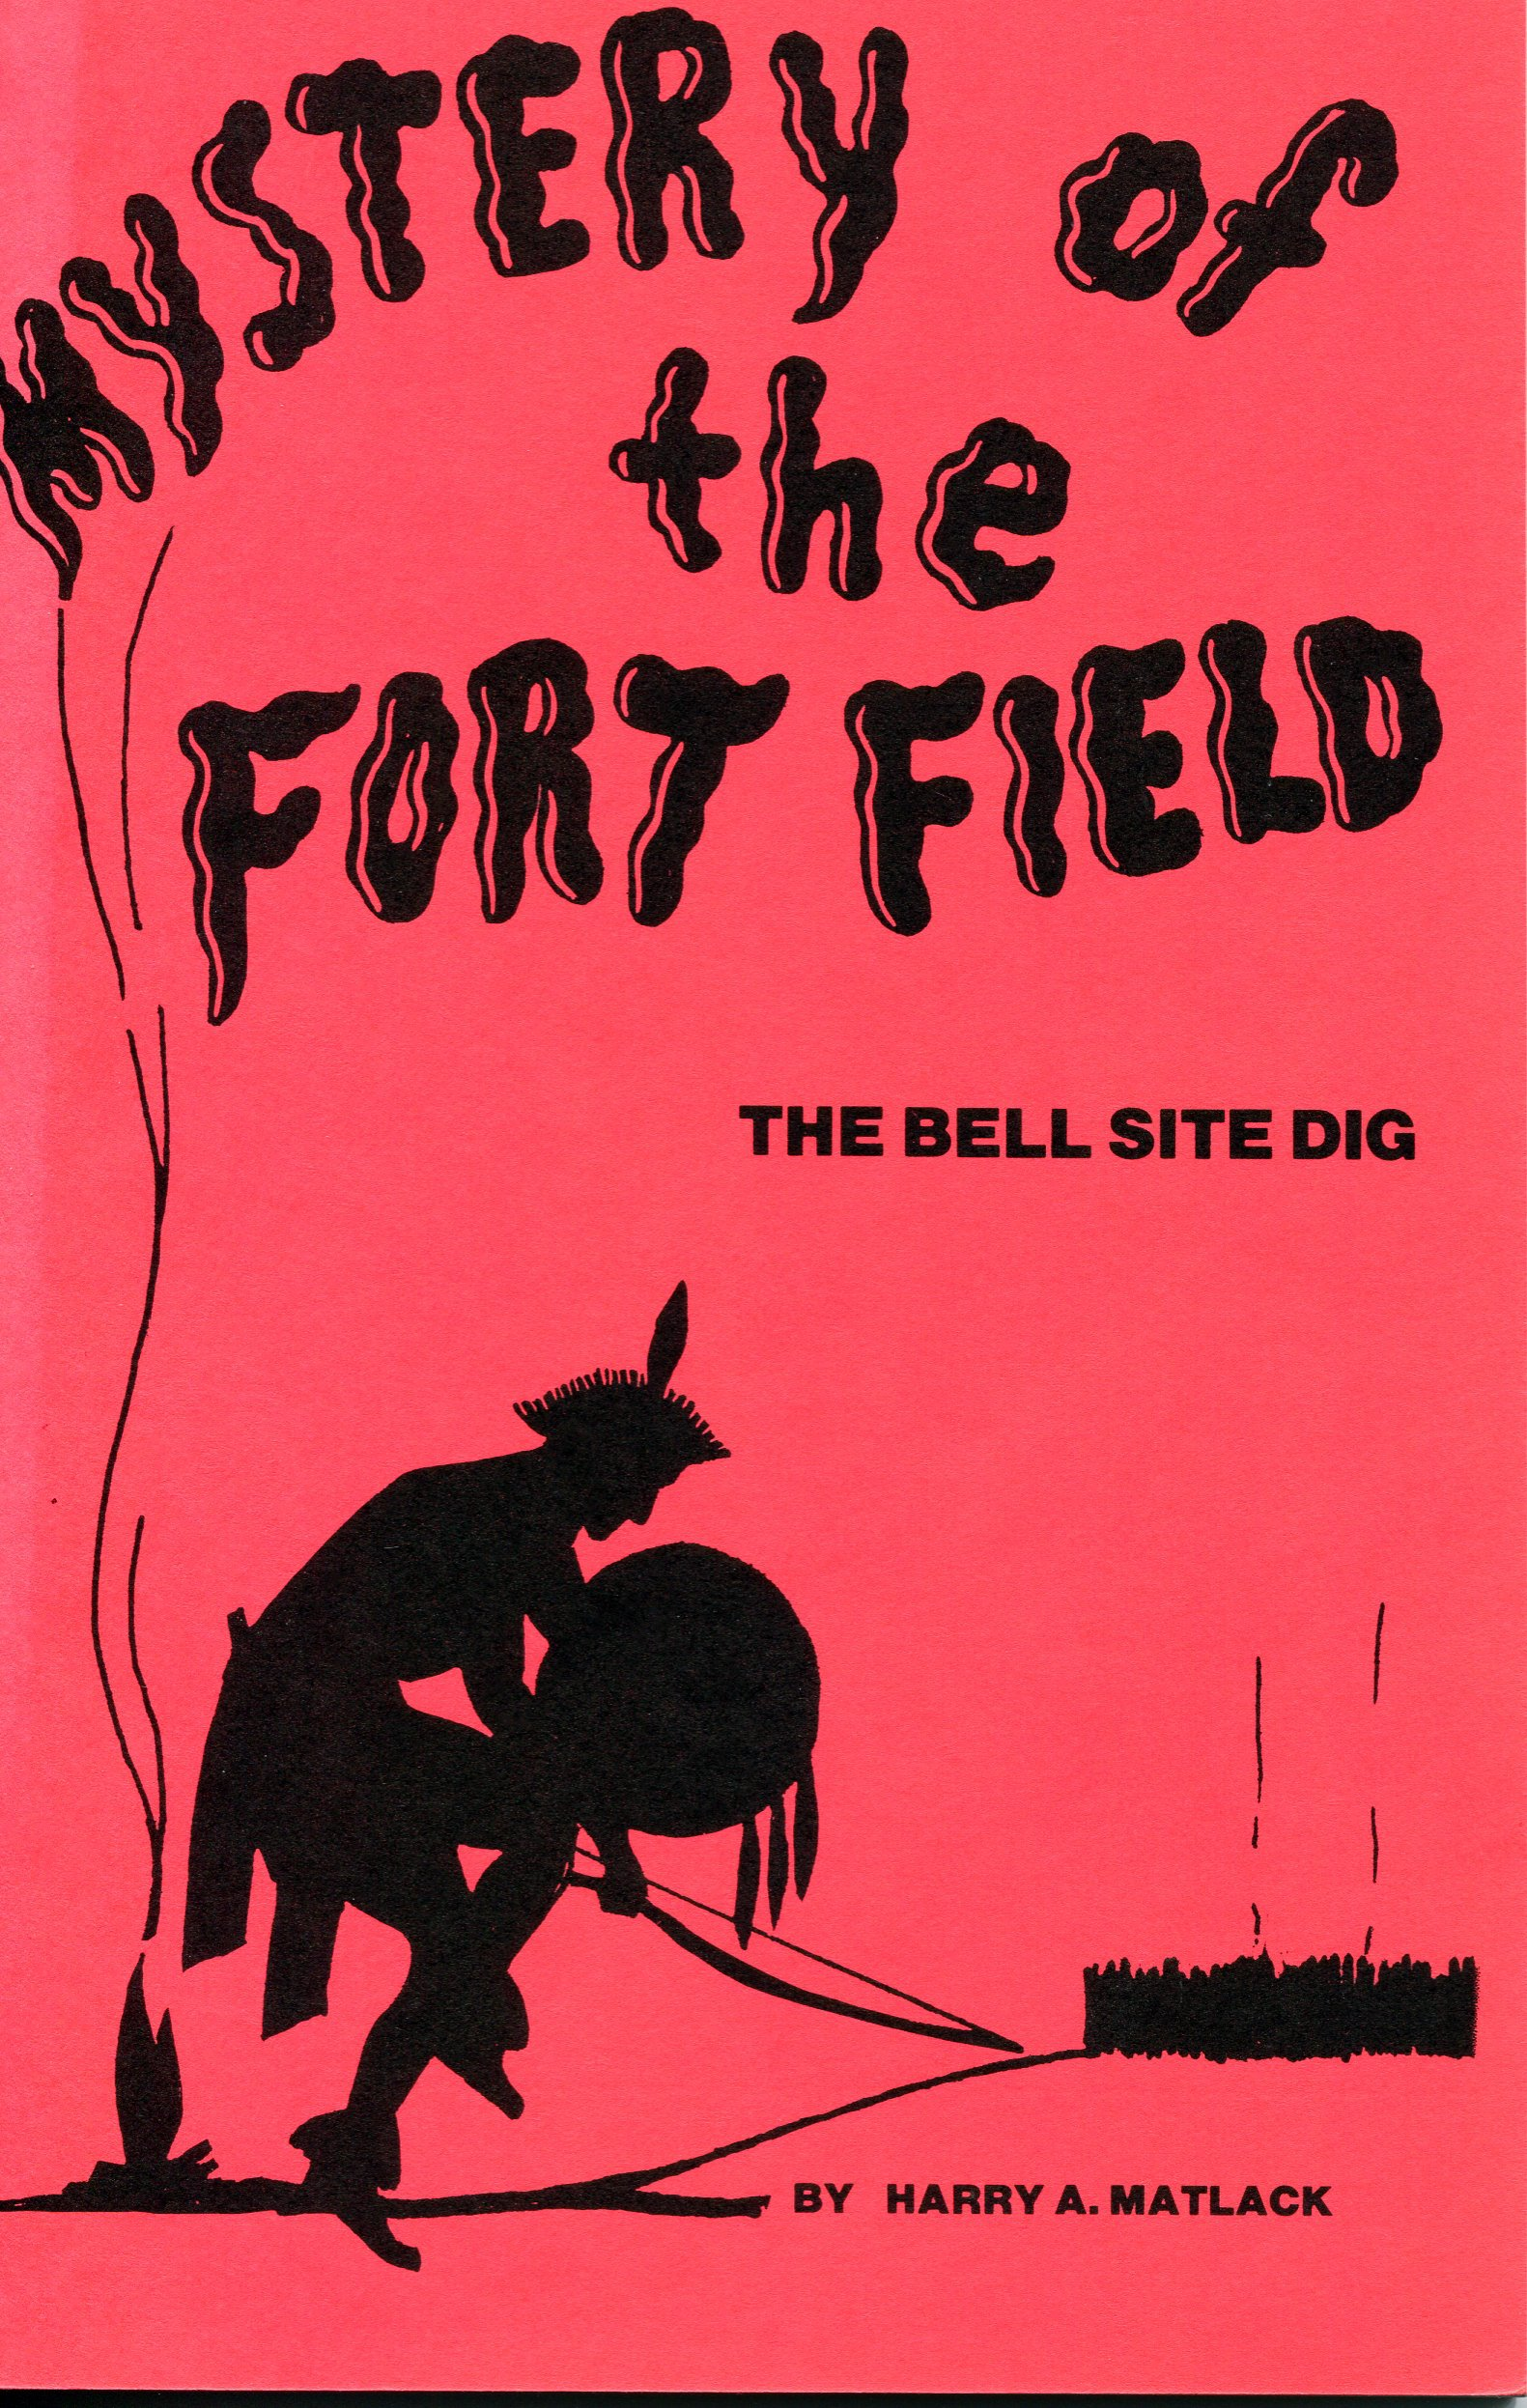 Mystery of the Fort Field, The Bell Site Dig